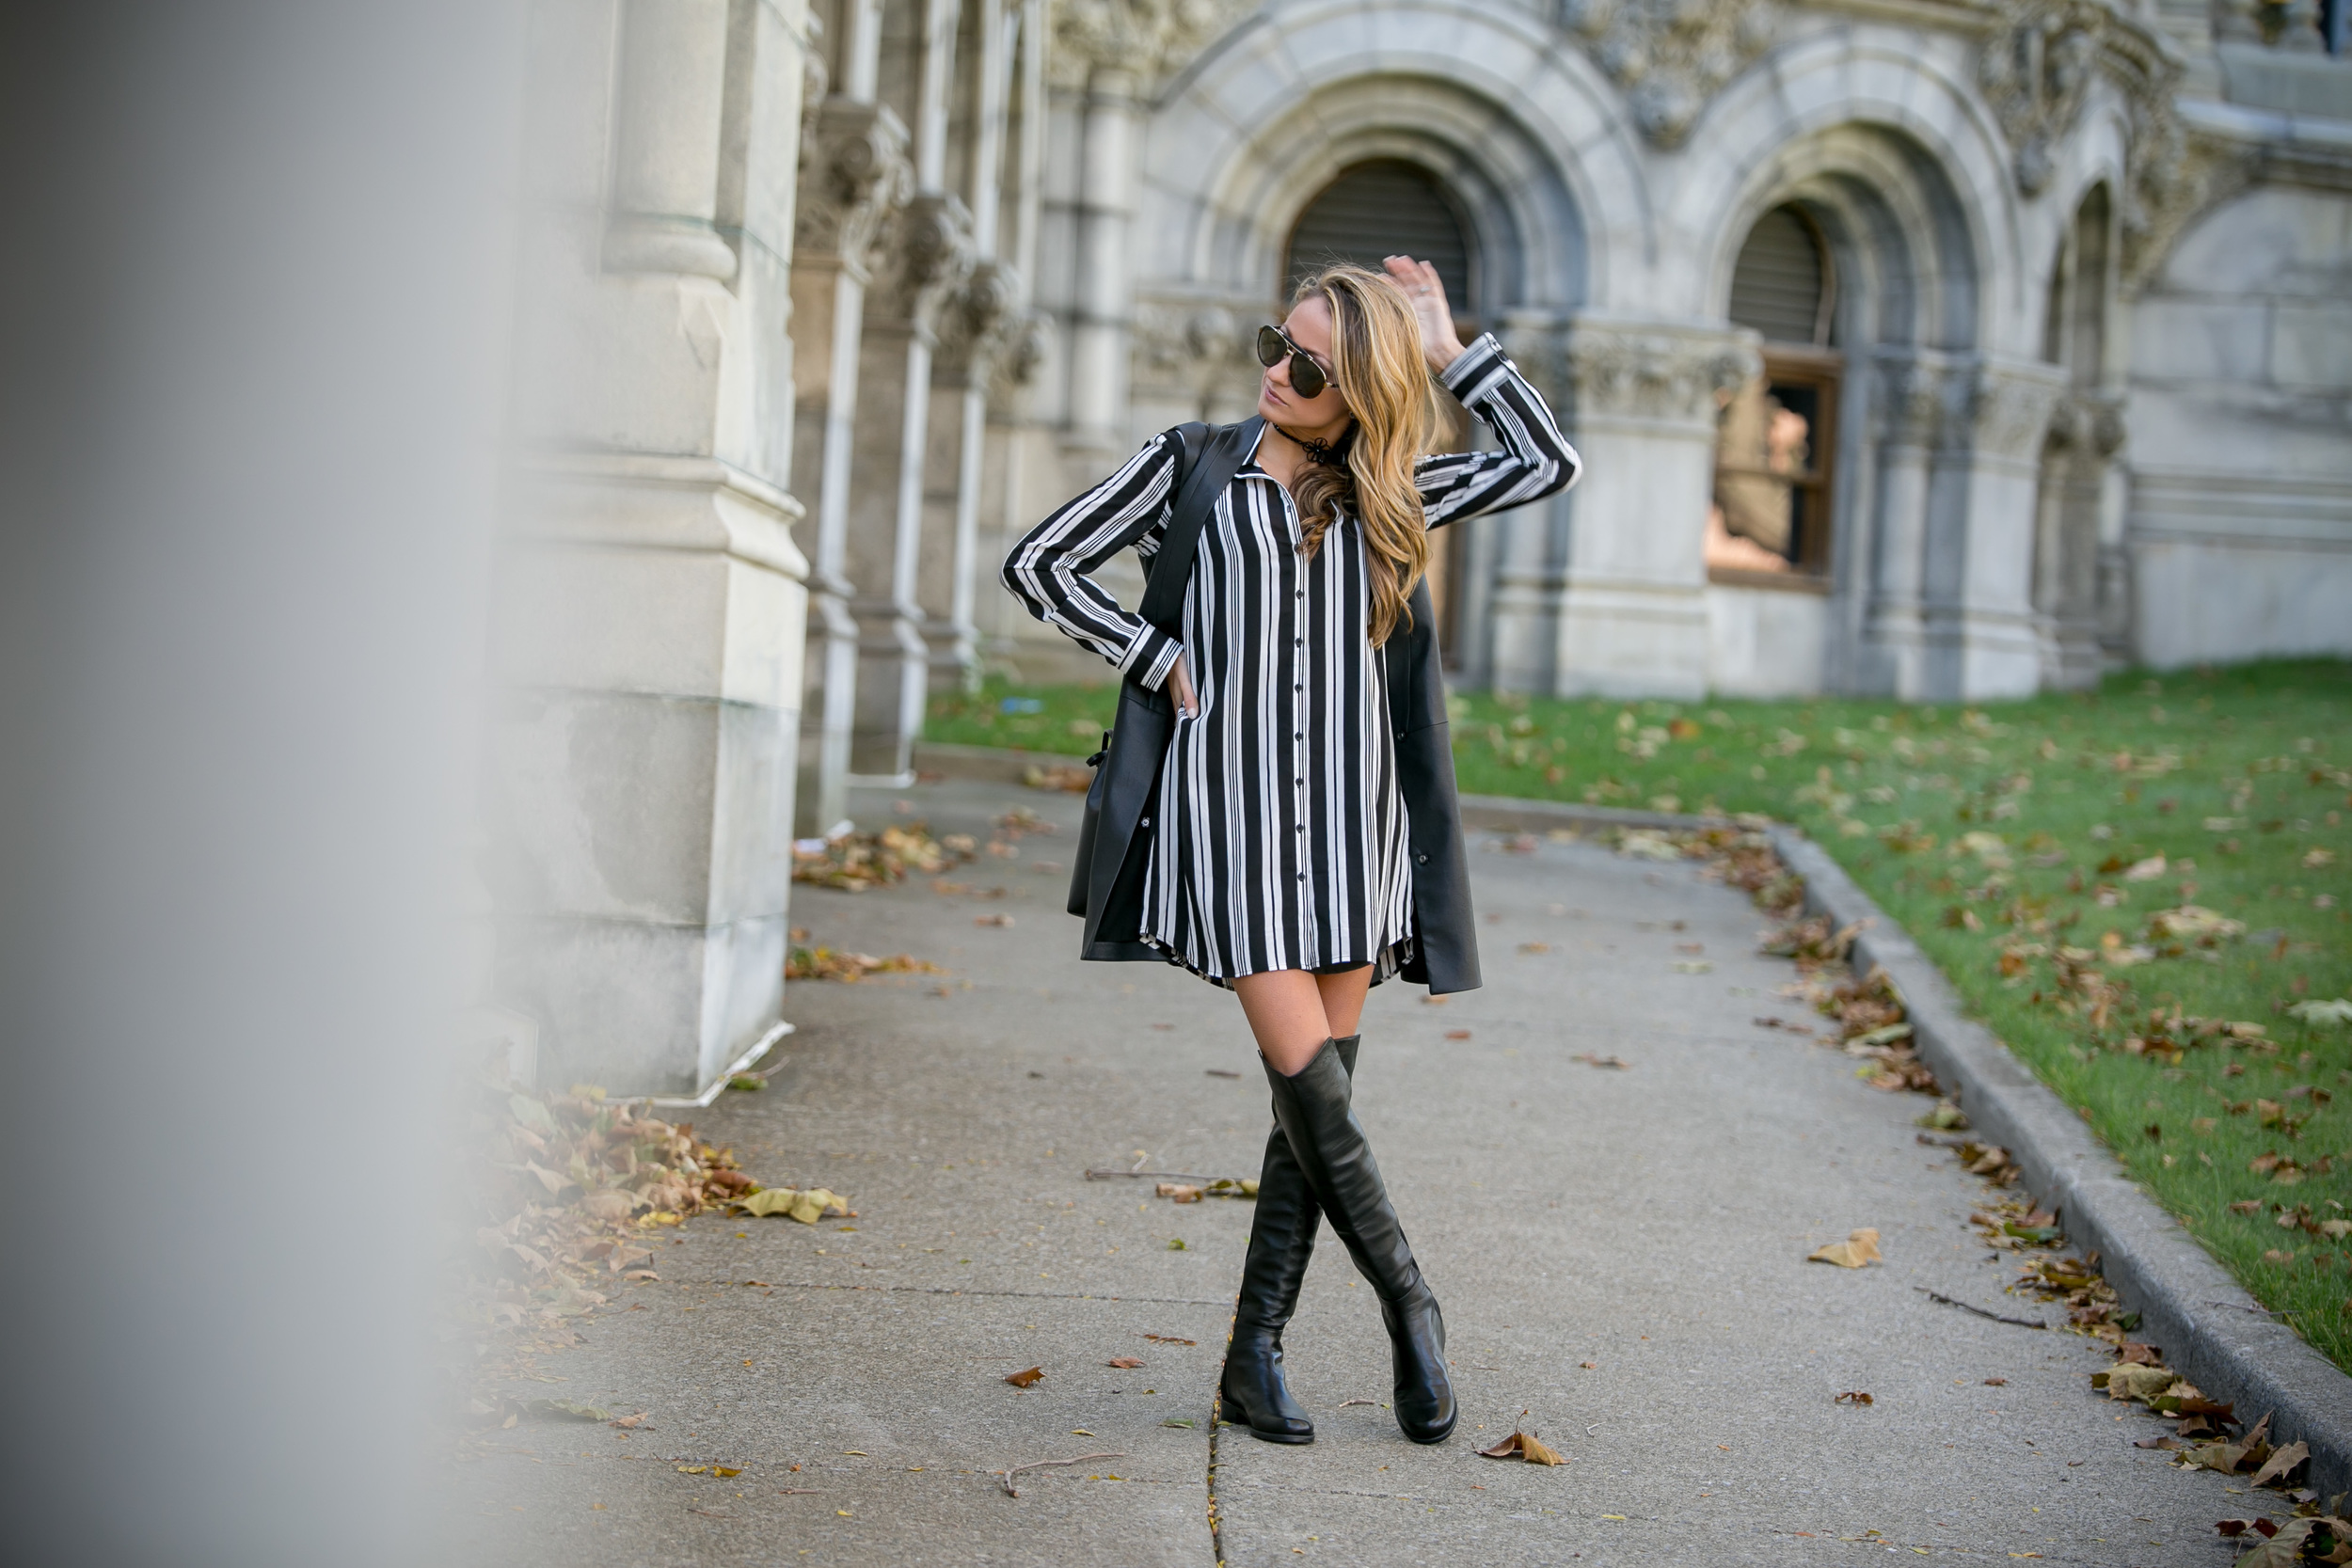 streetstyle by Lauren Recchia in striped dress and over-the-knee boots